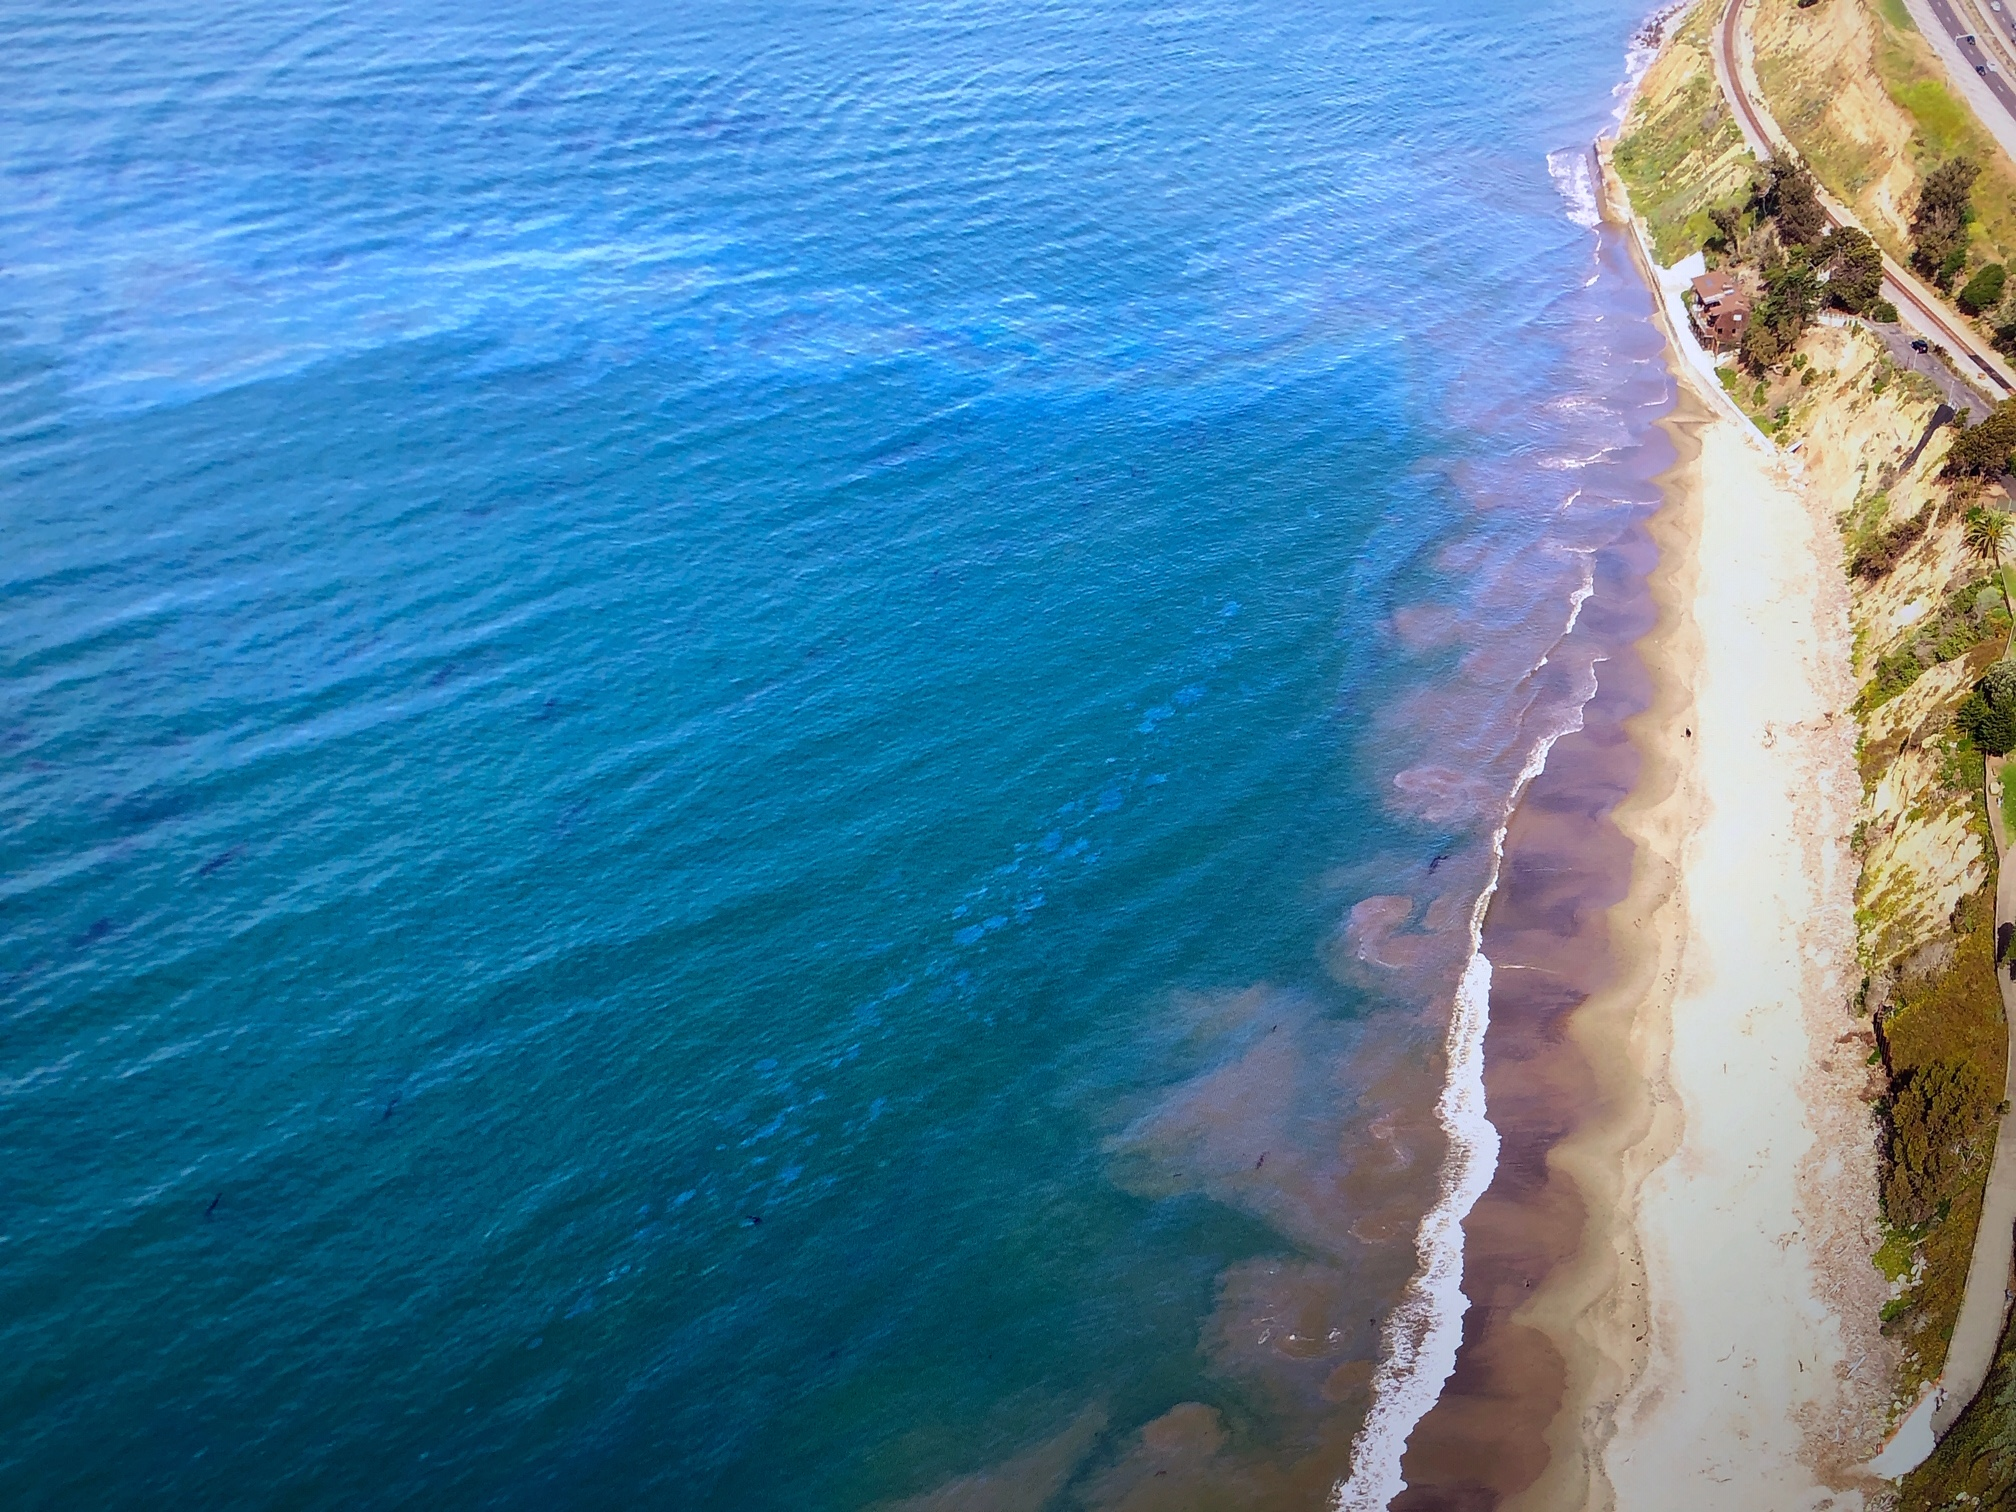 Oil leaks as of May 1, 2019 off Summerland Beach (All photos by Harry Rabin)